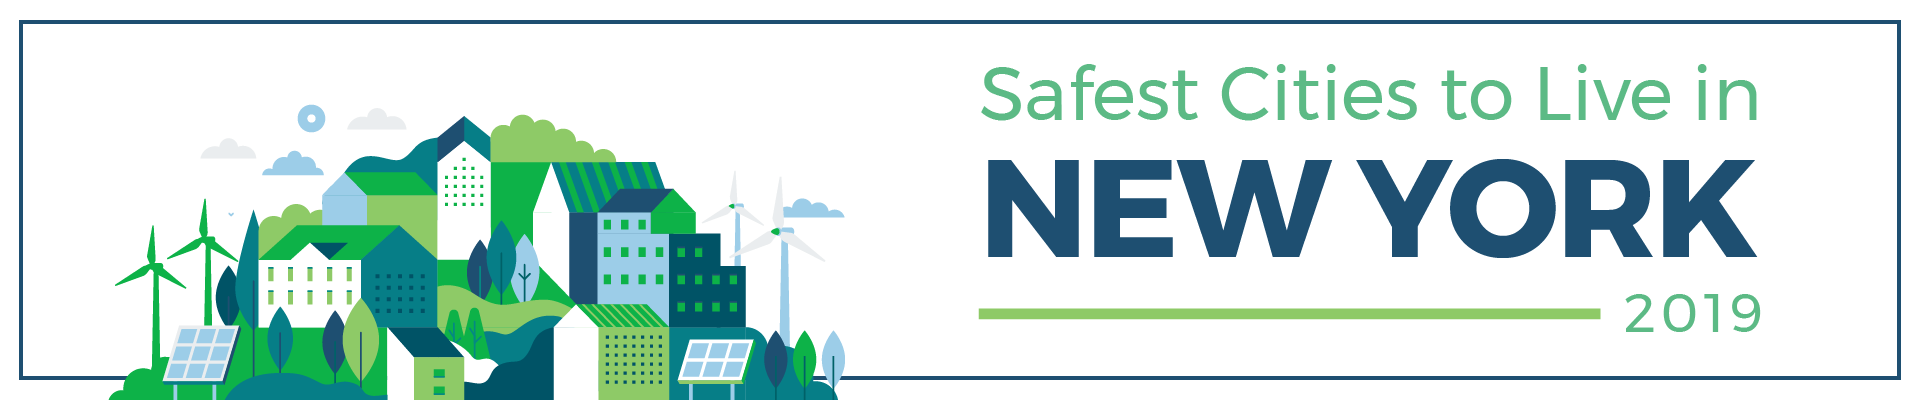 header - safest_cities_new_york_2019